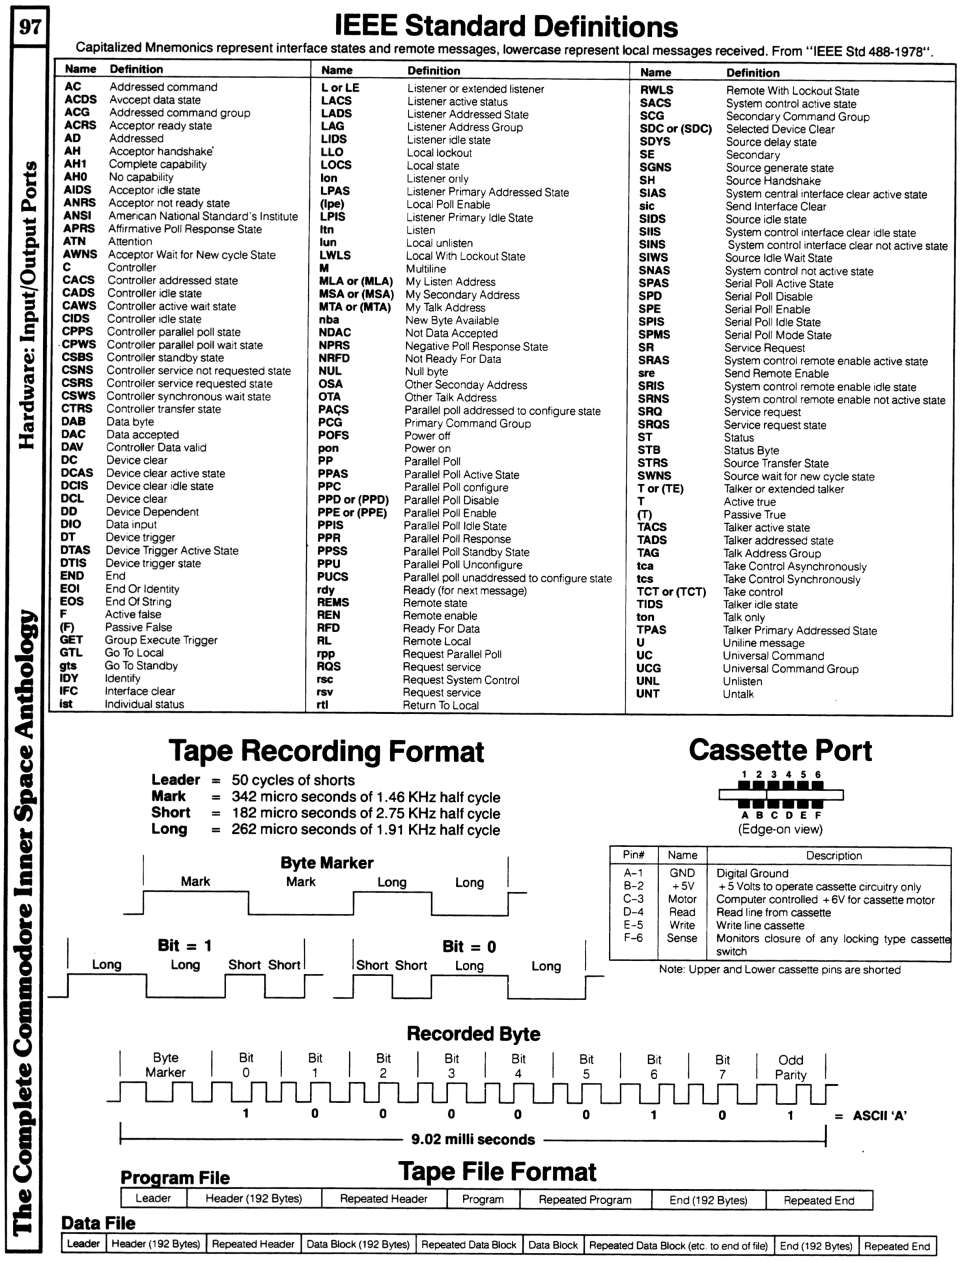 [960×1262 Hardware Section: Tape Recording Format, Cassette Port, IEEE Standard Definitions]